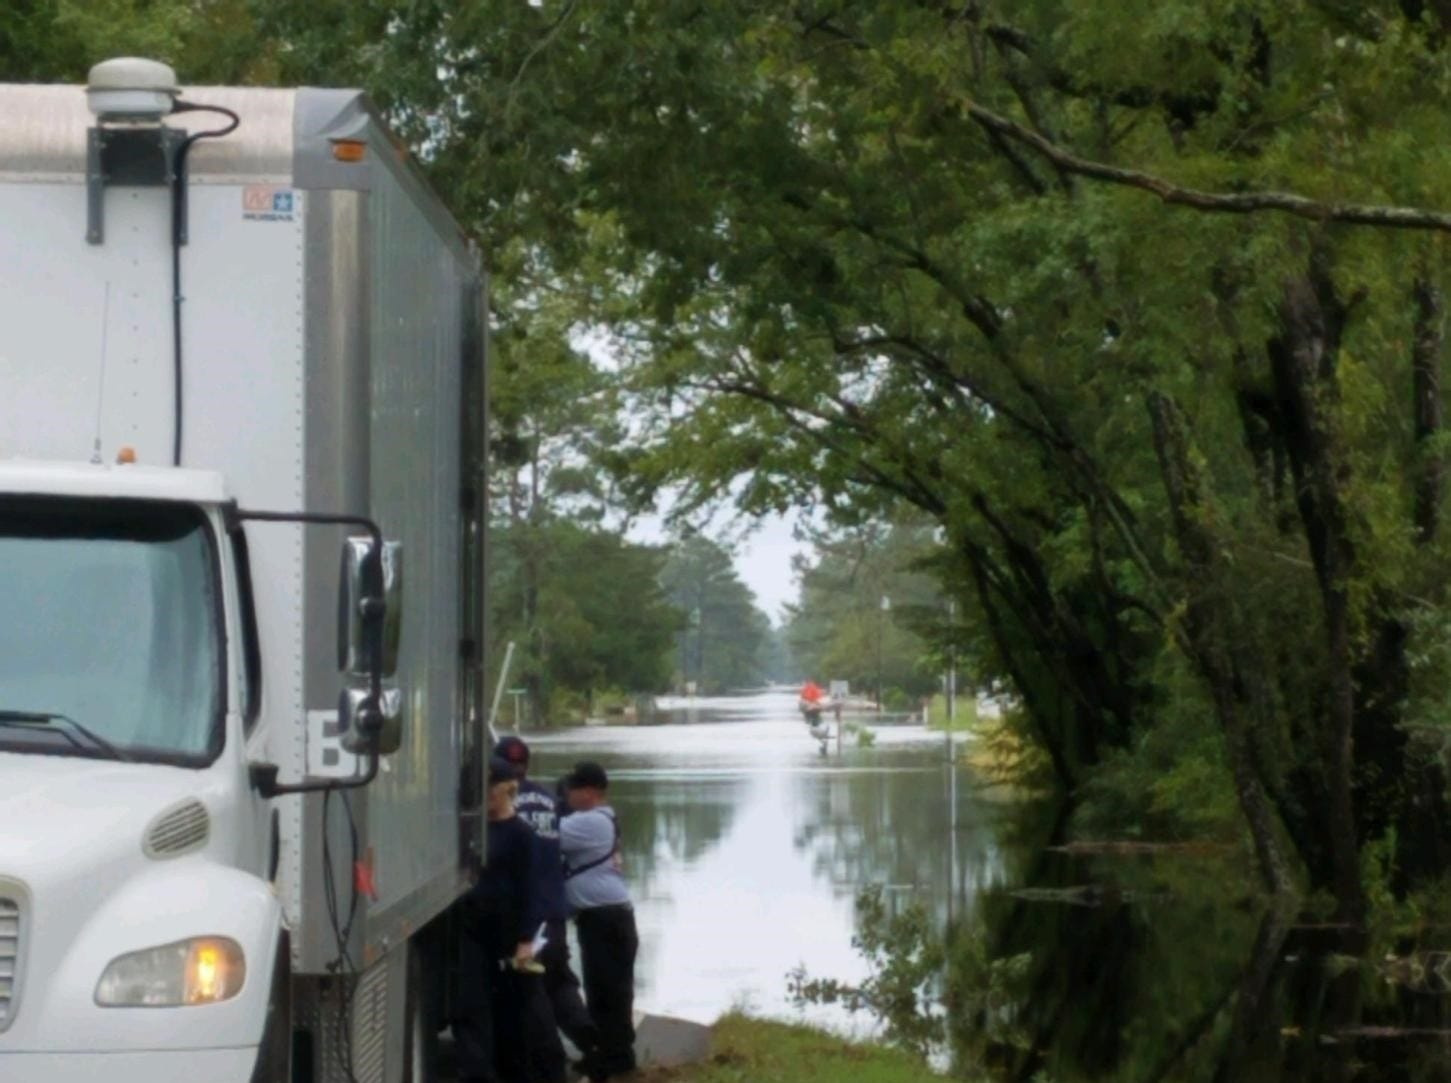 Arizona Task Force 1 performed boat rescues in areas affected by Hurricane Florence and worked with local and federal agencies over the last few days.